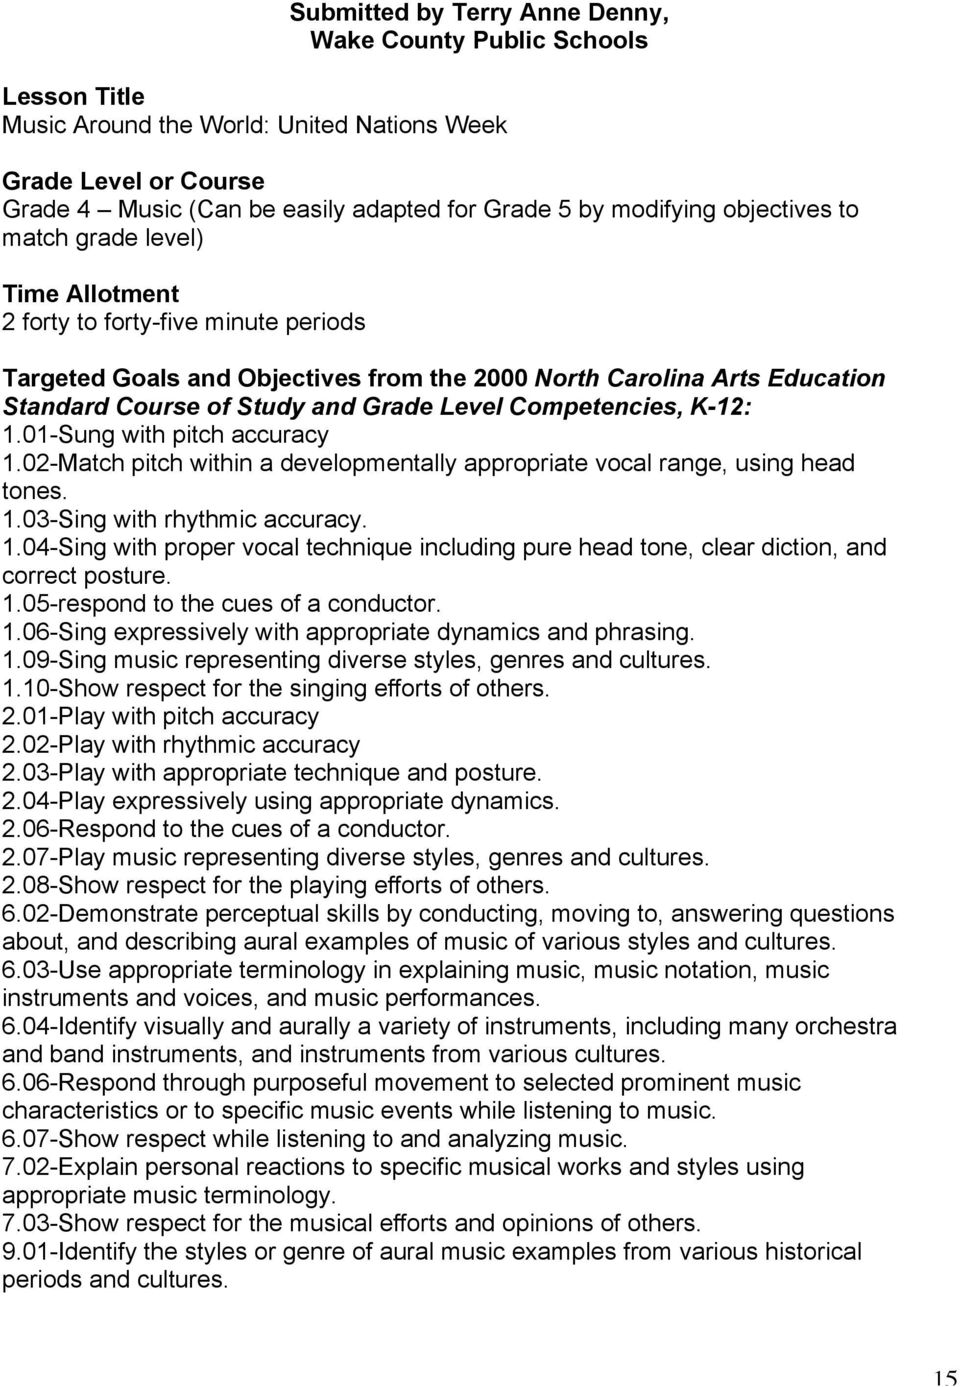 Competencies, K-12: 1.01-Sung with pitch accuracy 1.02-Match pitch within a developmentally appropriate vocal range, using head tones. 1.03-Sing with rhythmic accuracy. 1.04-Sing with proper vocal technique including pure head tone, clear diction, and correct posture.